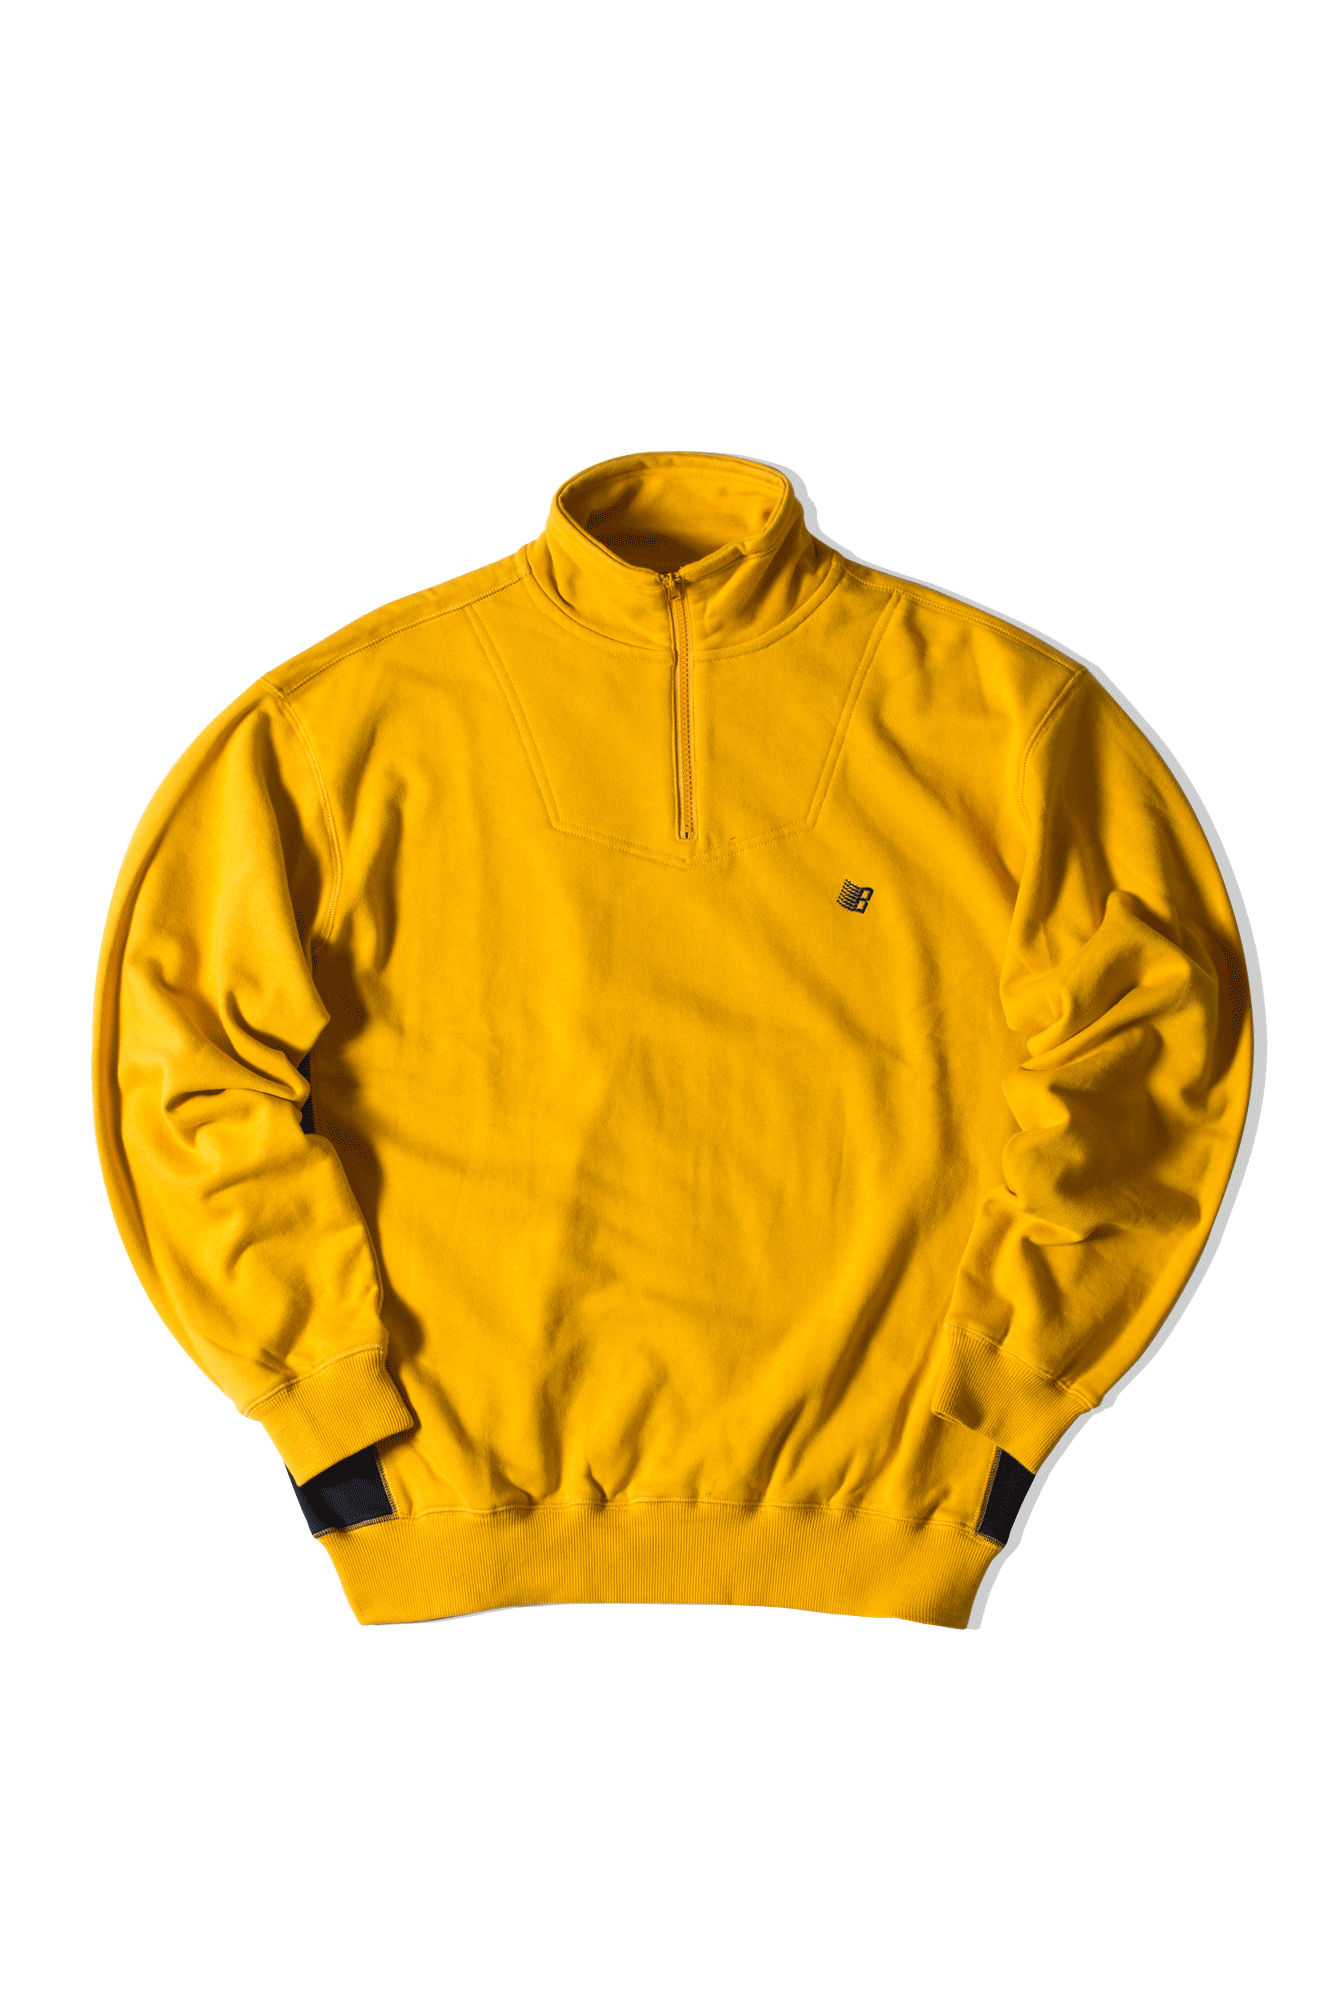 Quarter Zip-up sweatshirt Yellow